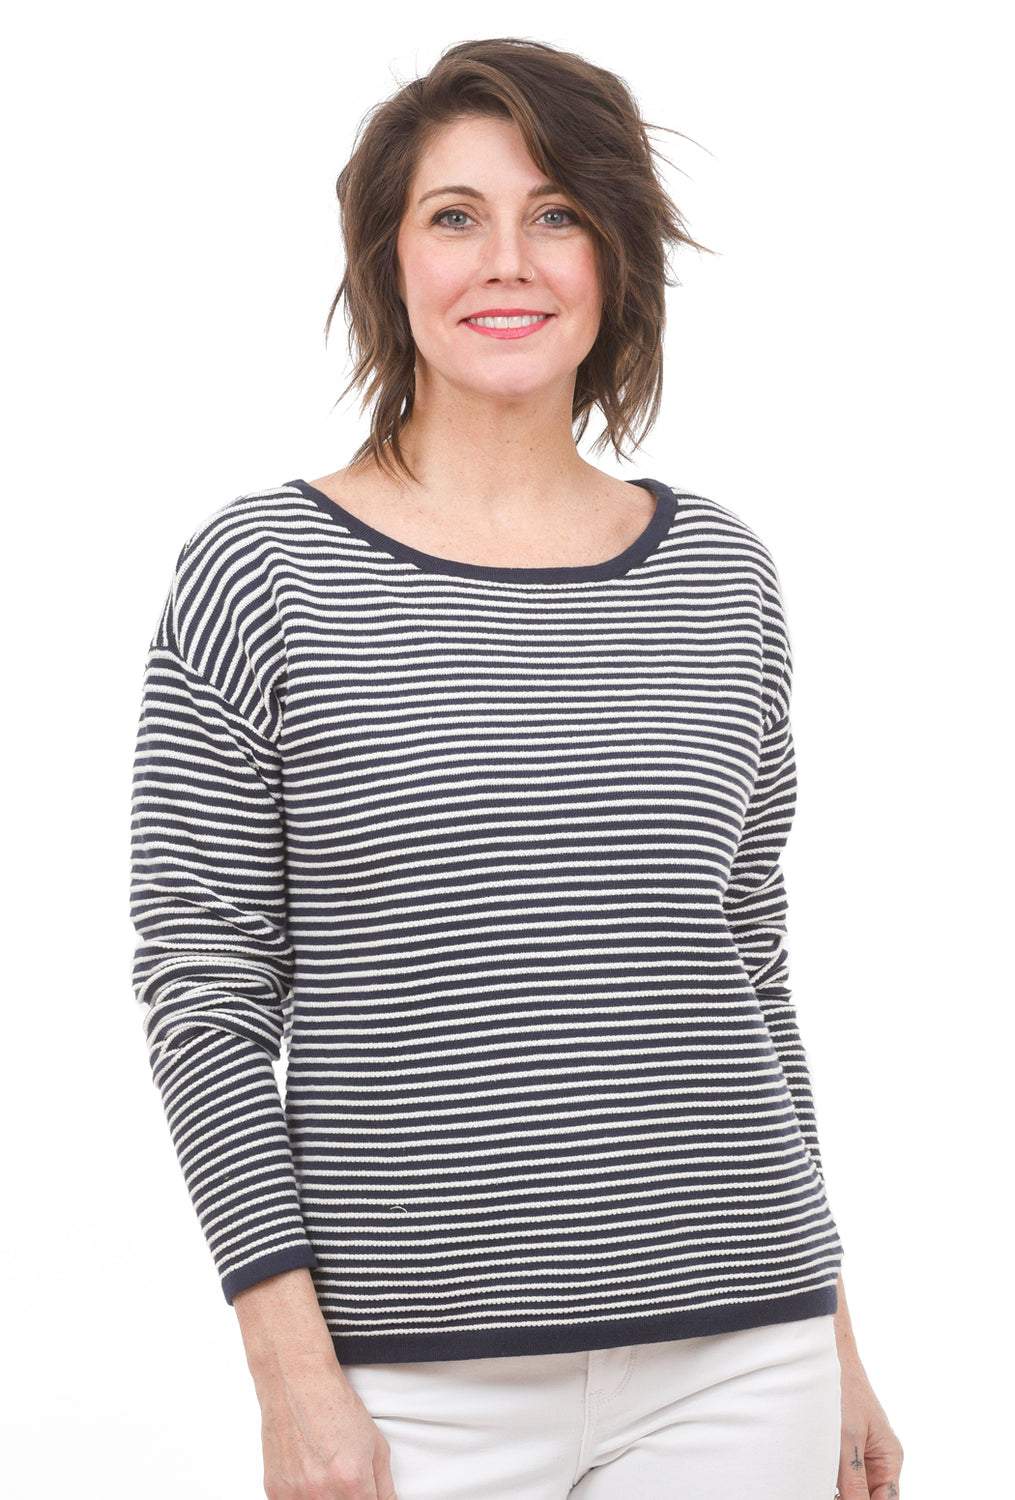 NYDJ Nautical Stripe Sweater, Navy/White